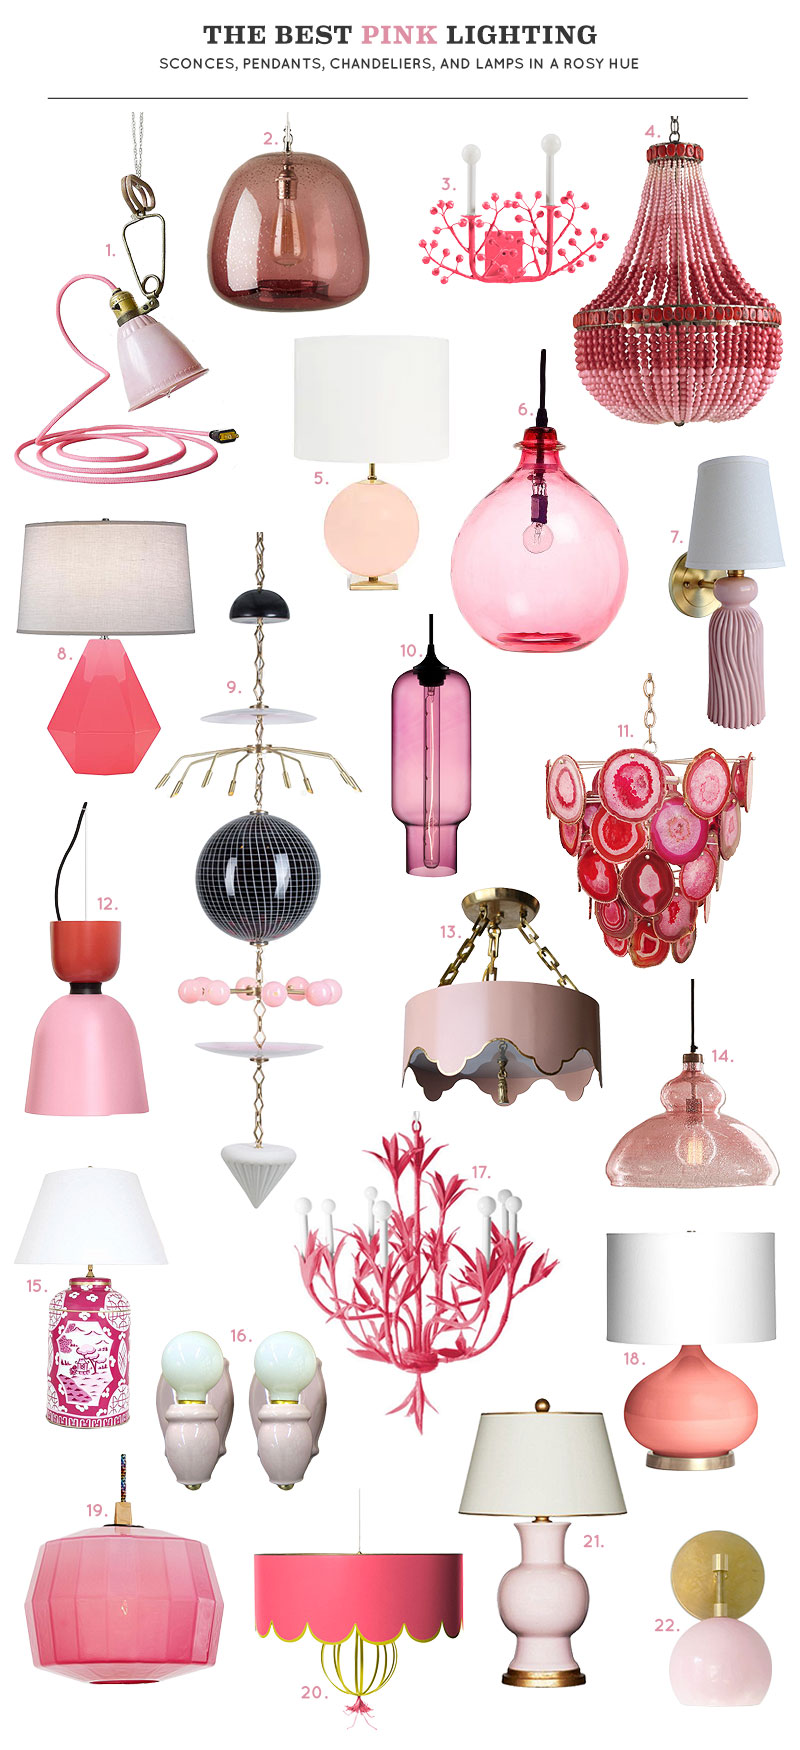 The Best Pink Lighting: Sconces, Pendants, Chandeliers, and Lamps in a Rosy Hue | Making it Lovely